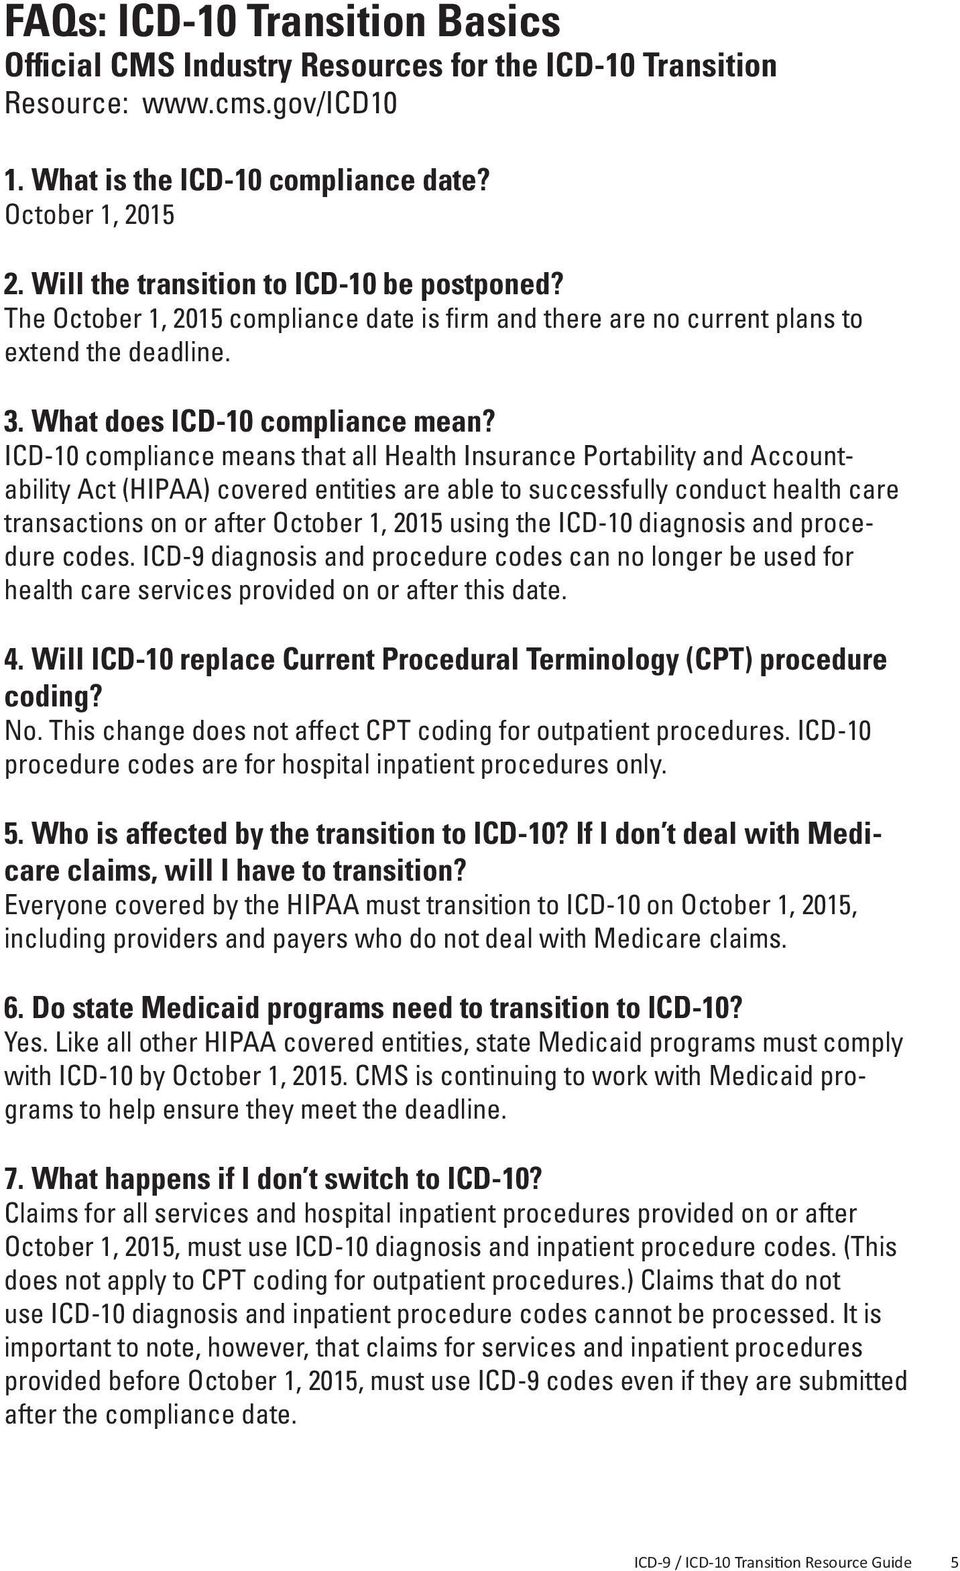 ICD-10 compliance means that all Health Insurance Portability and  Accountability Act (HIPAA)